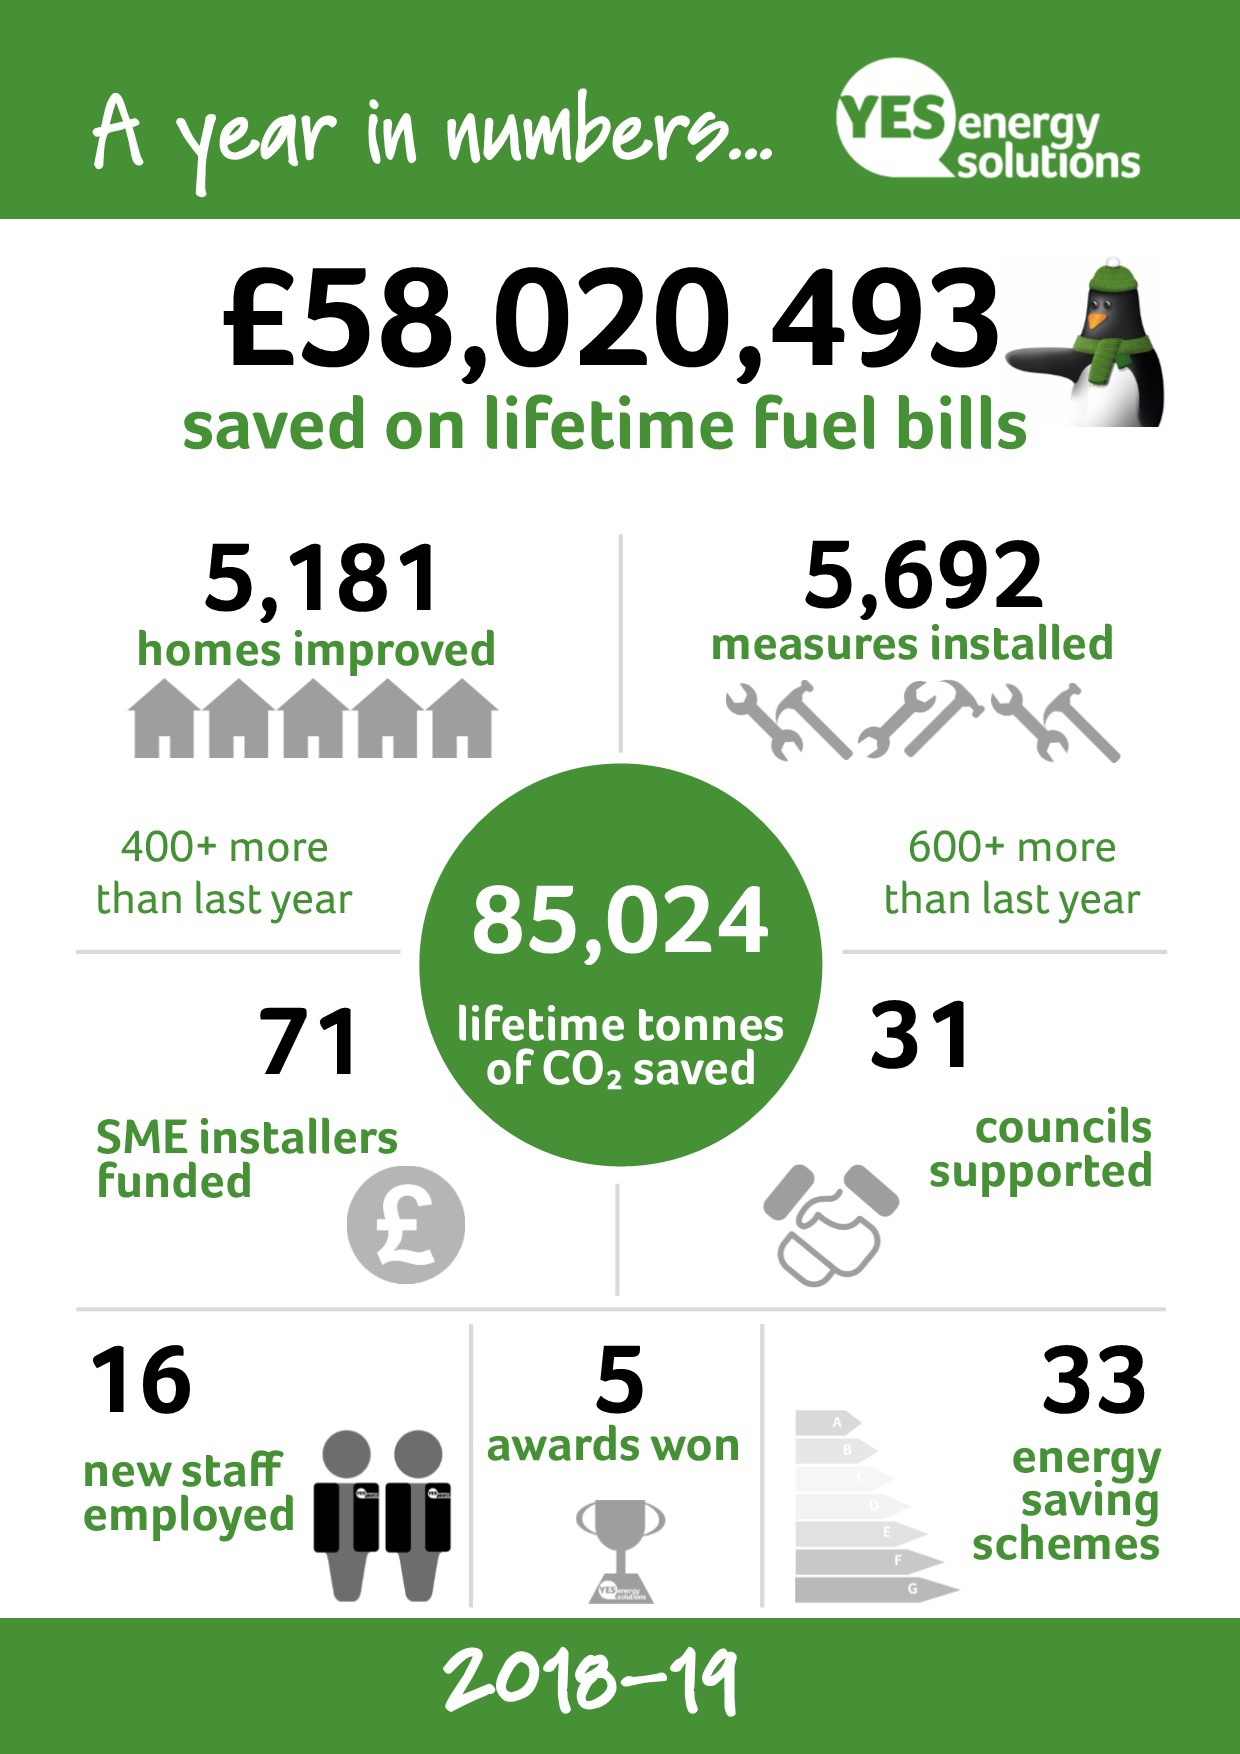 YES Energy Solutions' year in numbers